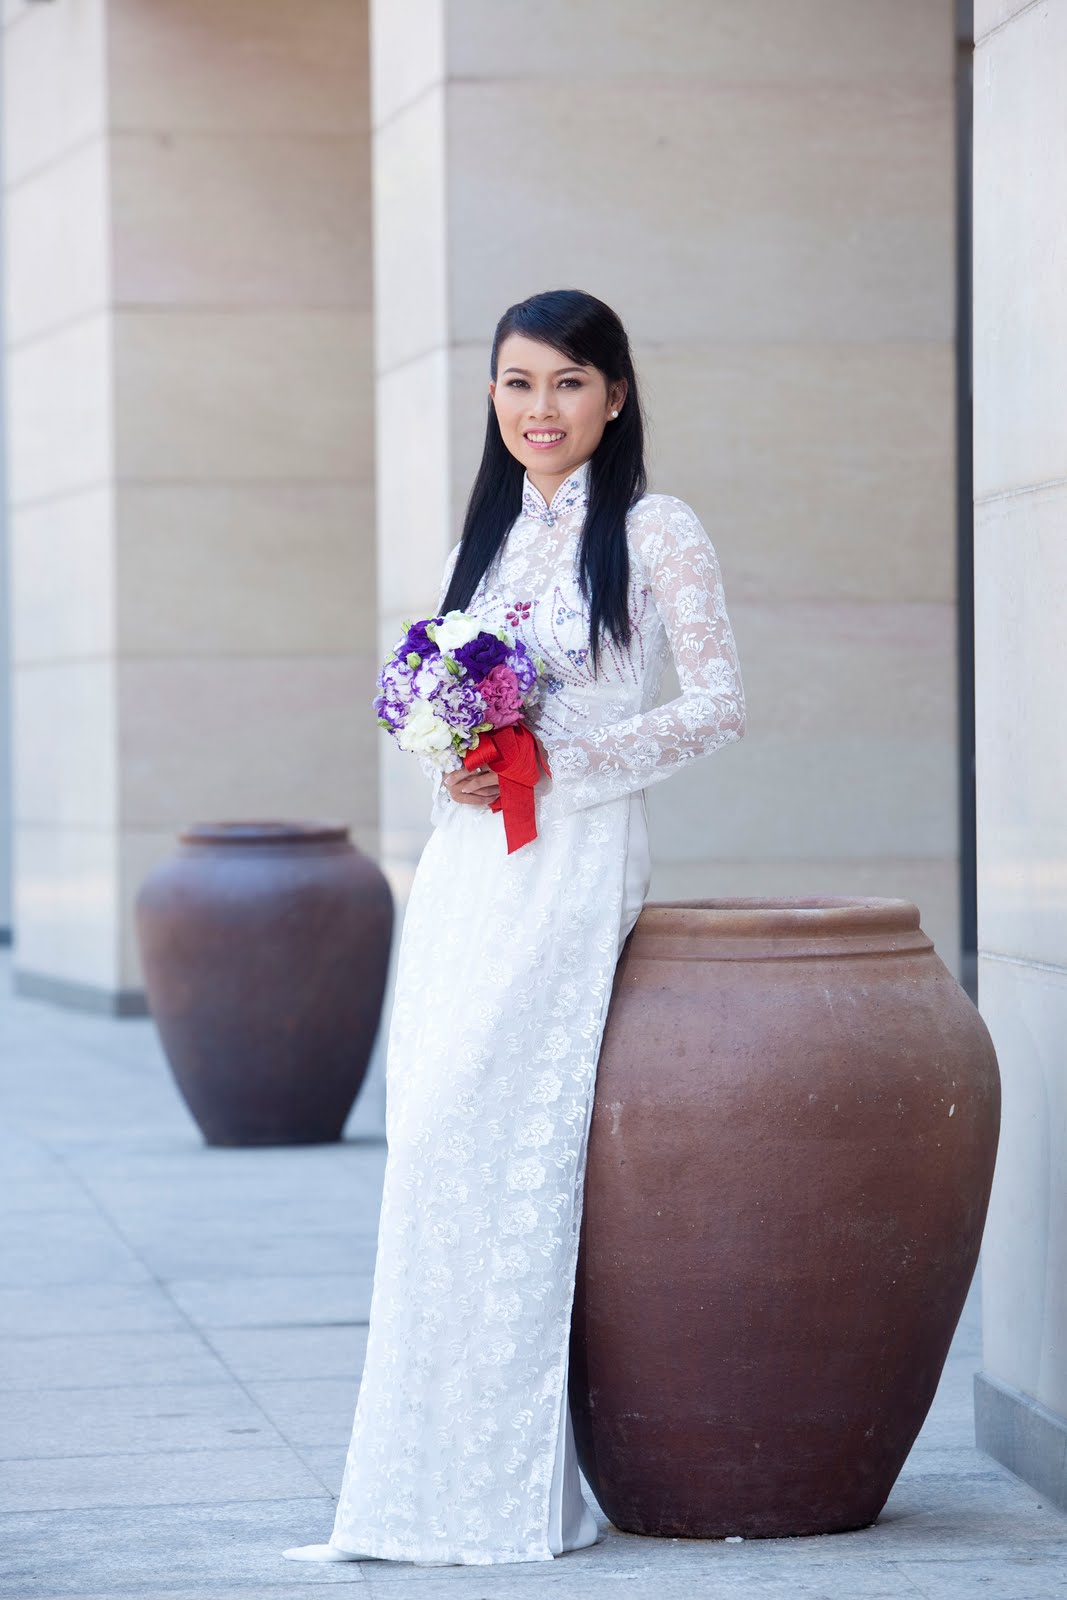 viet se dress ao dai aacute o d agrave i vietnam national costume beautiful girl wearing viet se traditional dress ao dai